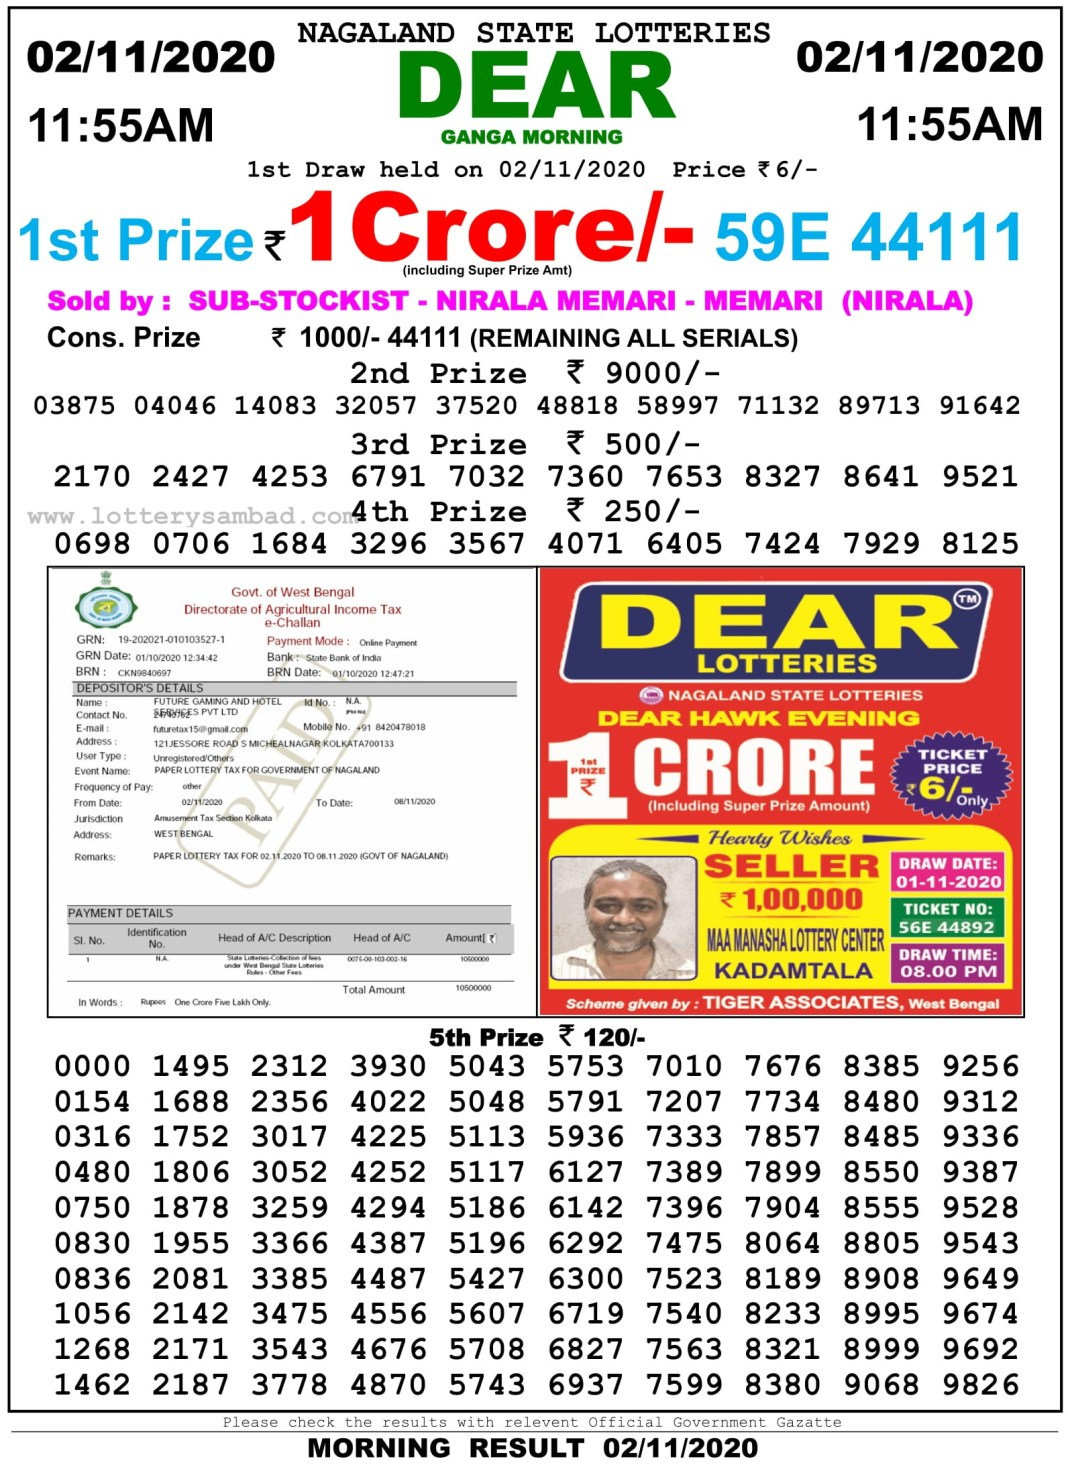 Sikkim State Lottery Result 11.55 AM 2.11.2020